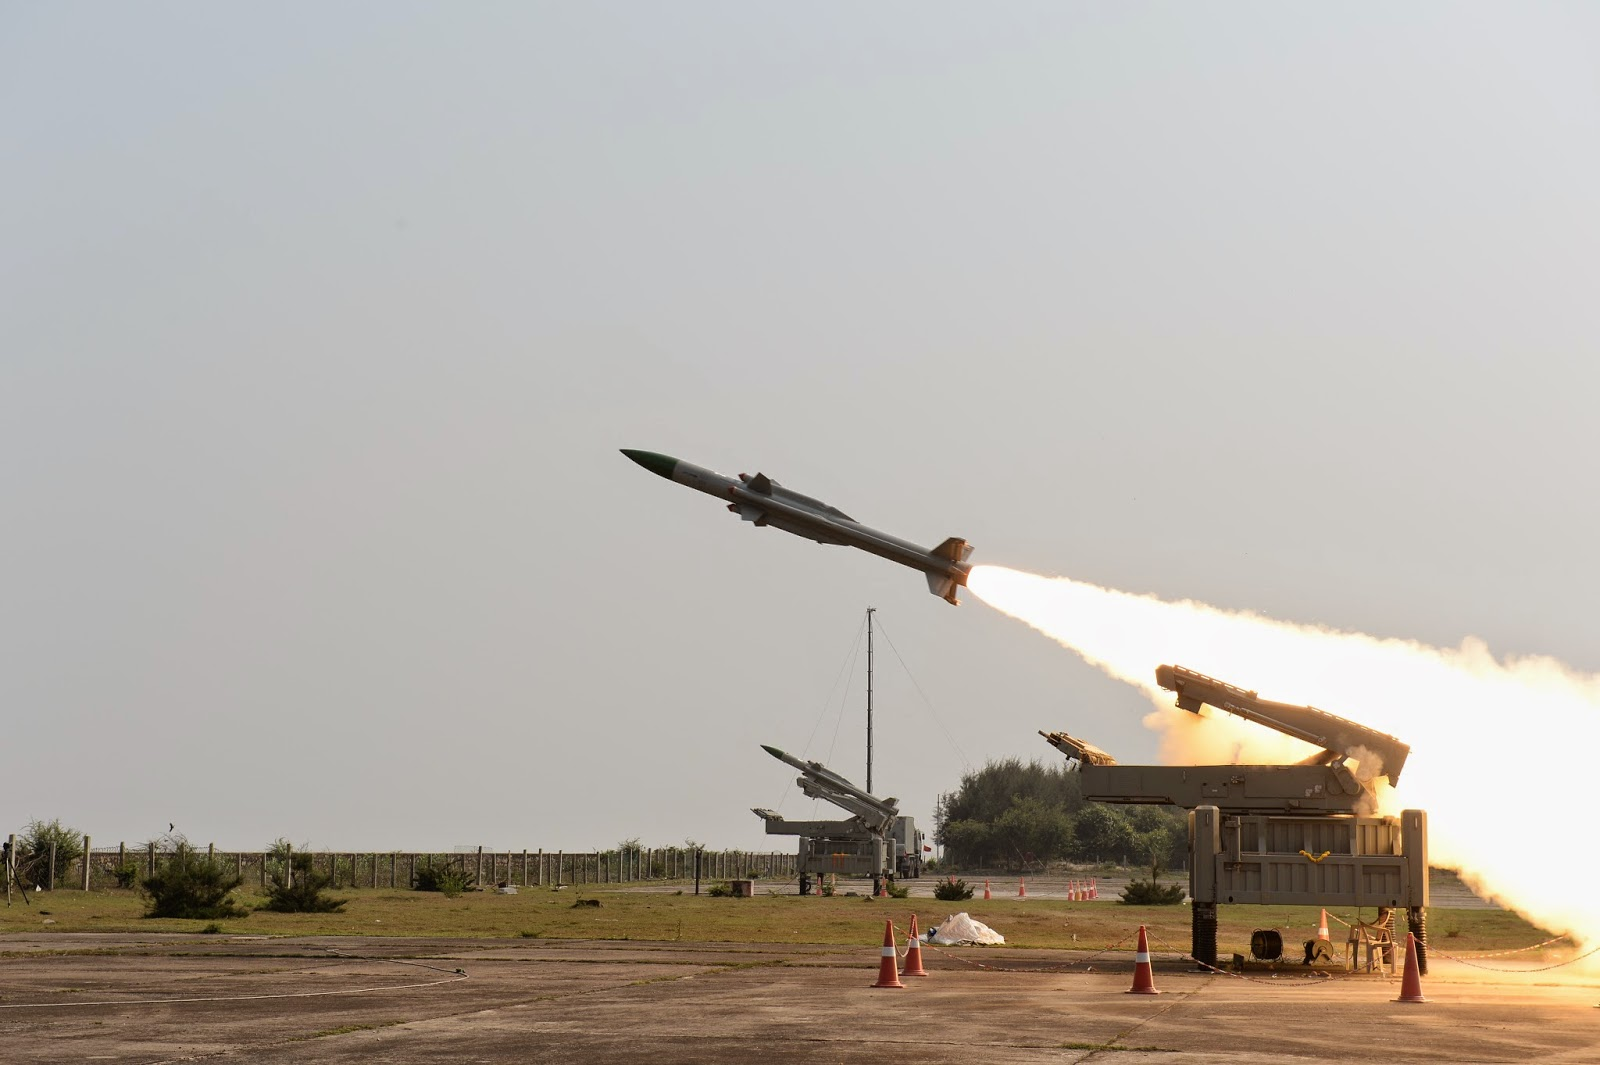 India Air Force Missile Test (Photo Credit: Defense Research and Development Organisation)